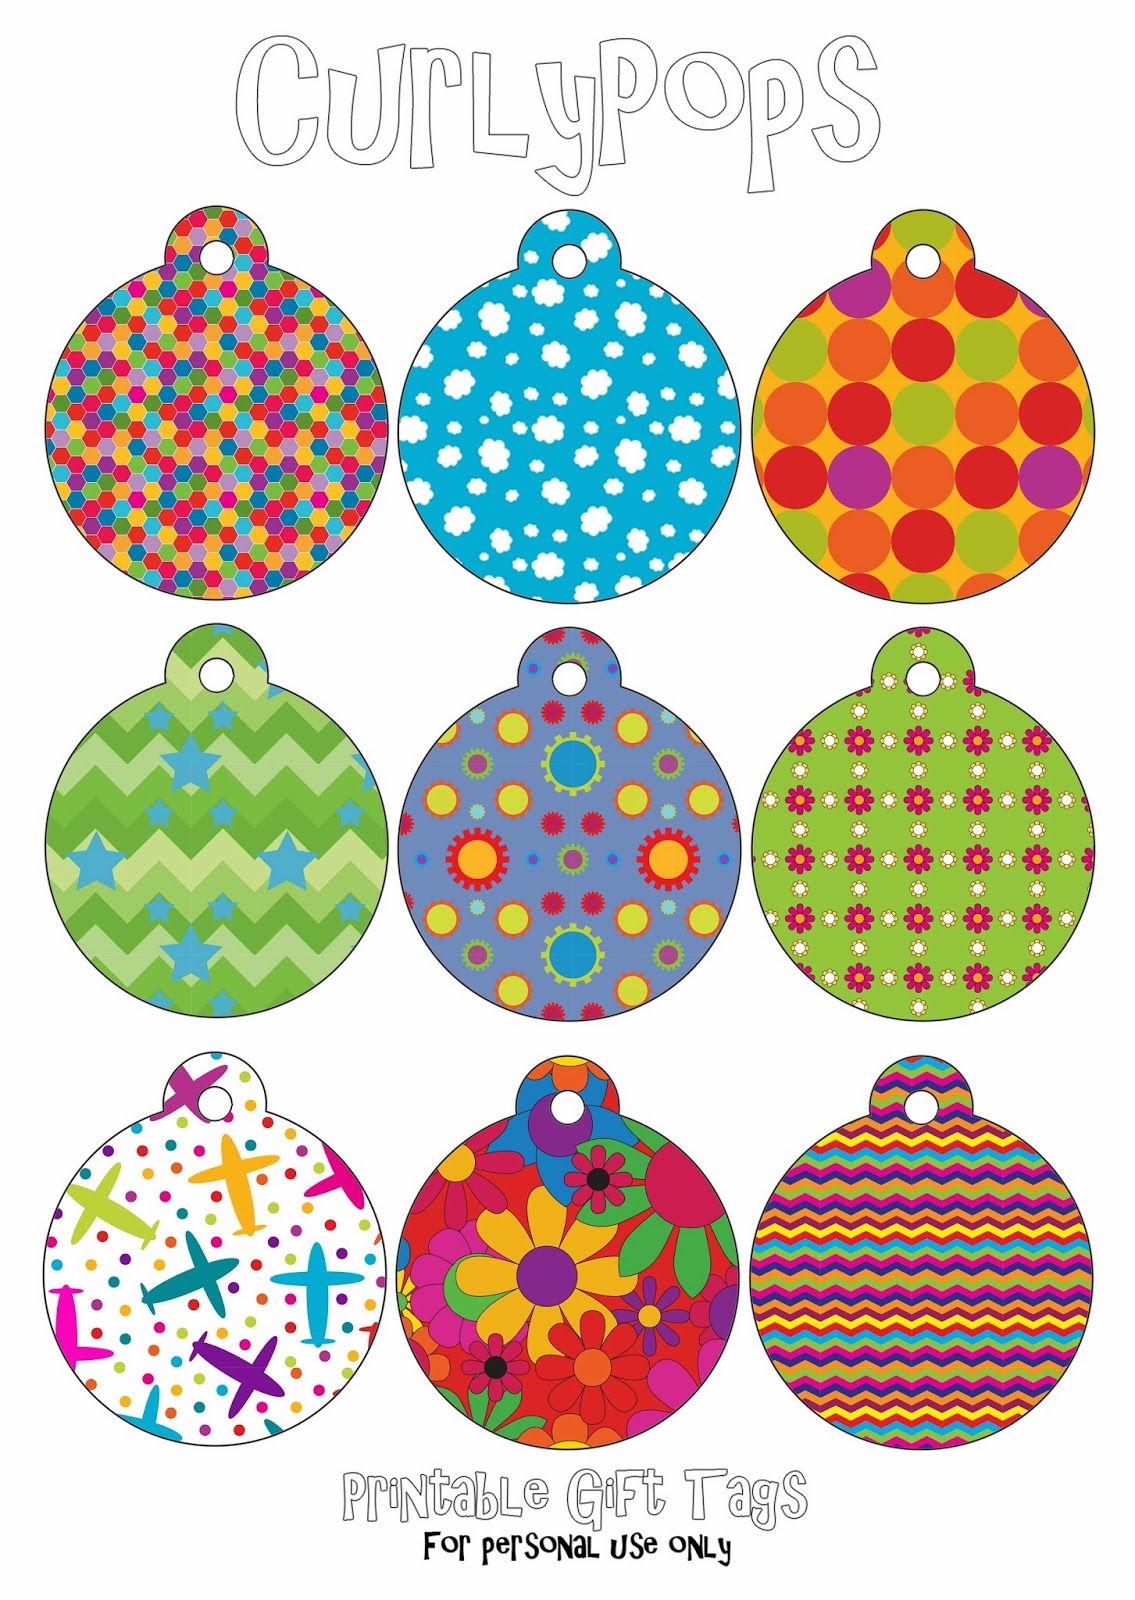 Smart image intended for ornaments printable